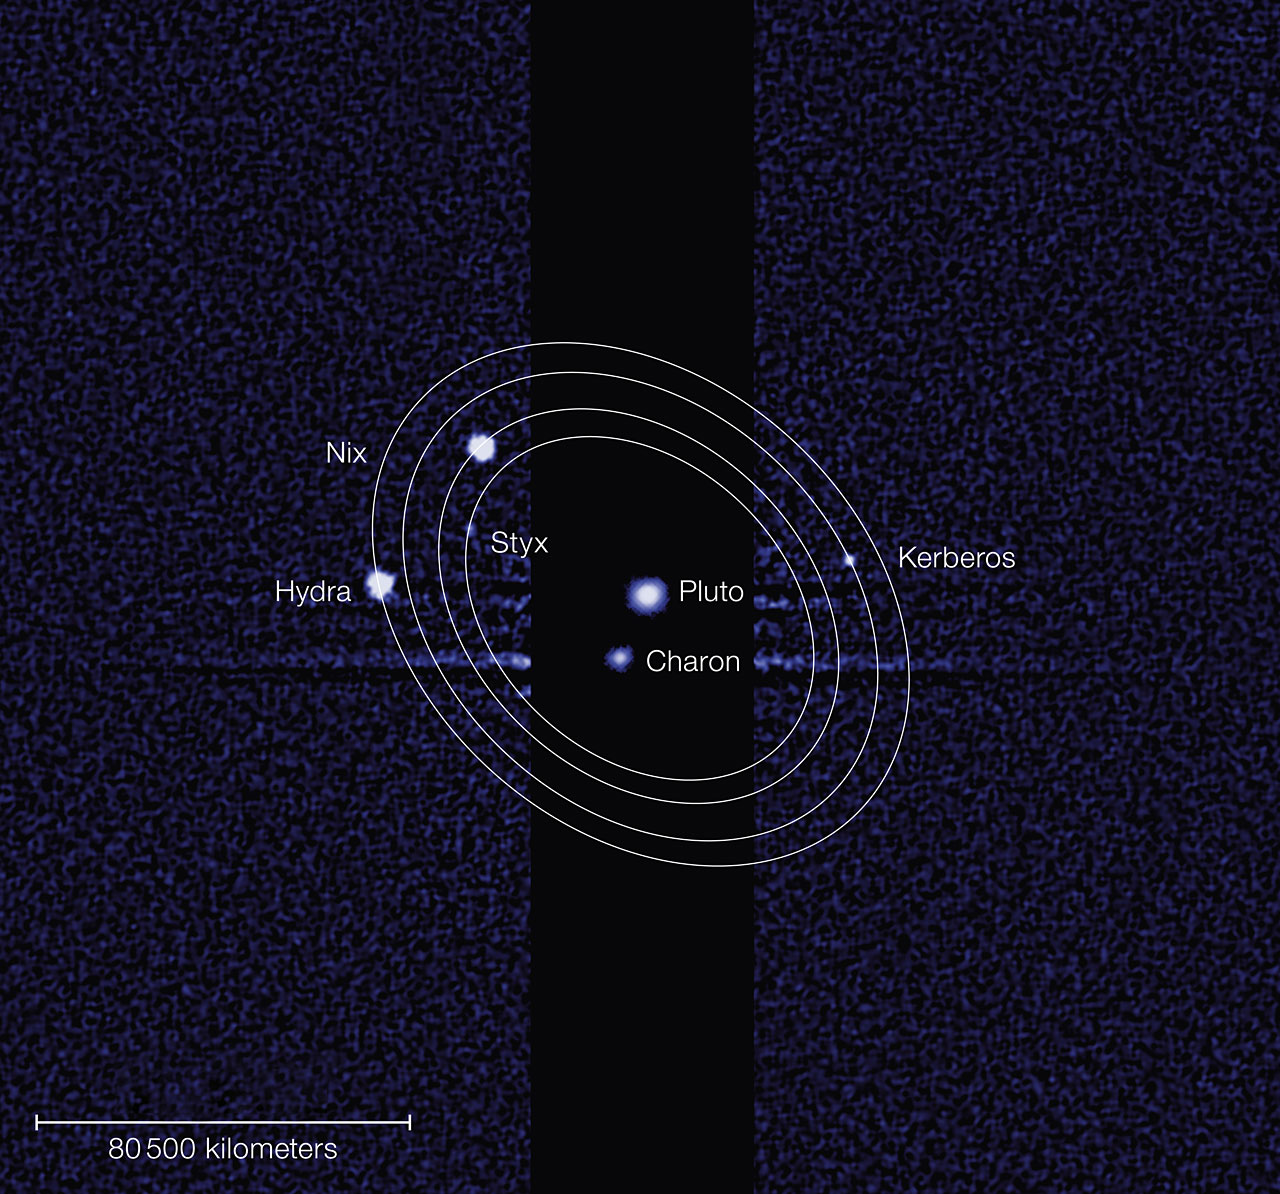 2 Pluto Moons Get New Names (Sorry 'Star Trek' Fans)